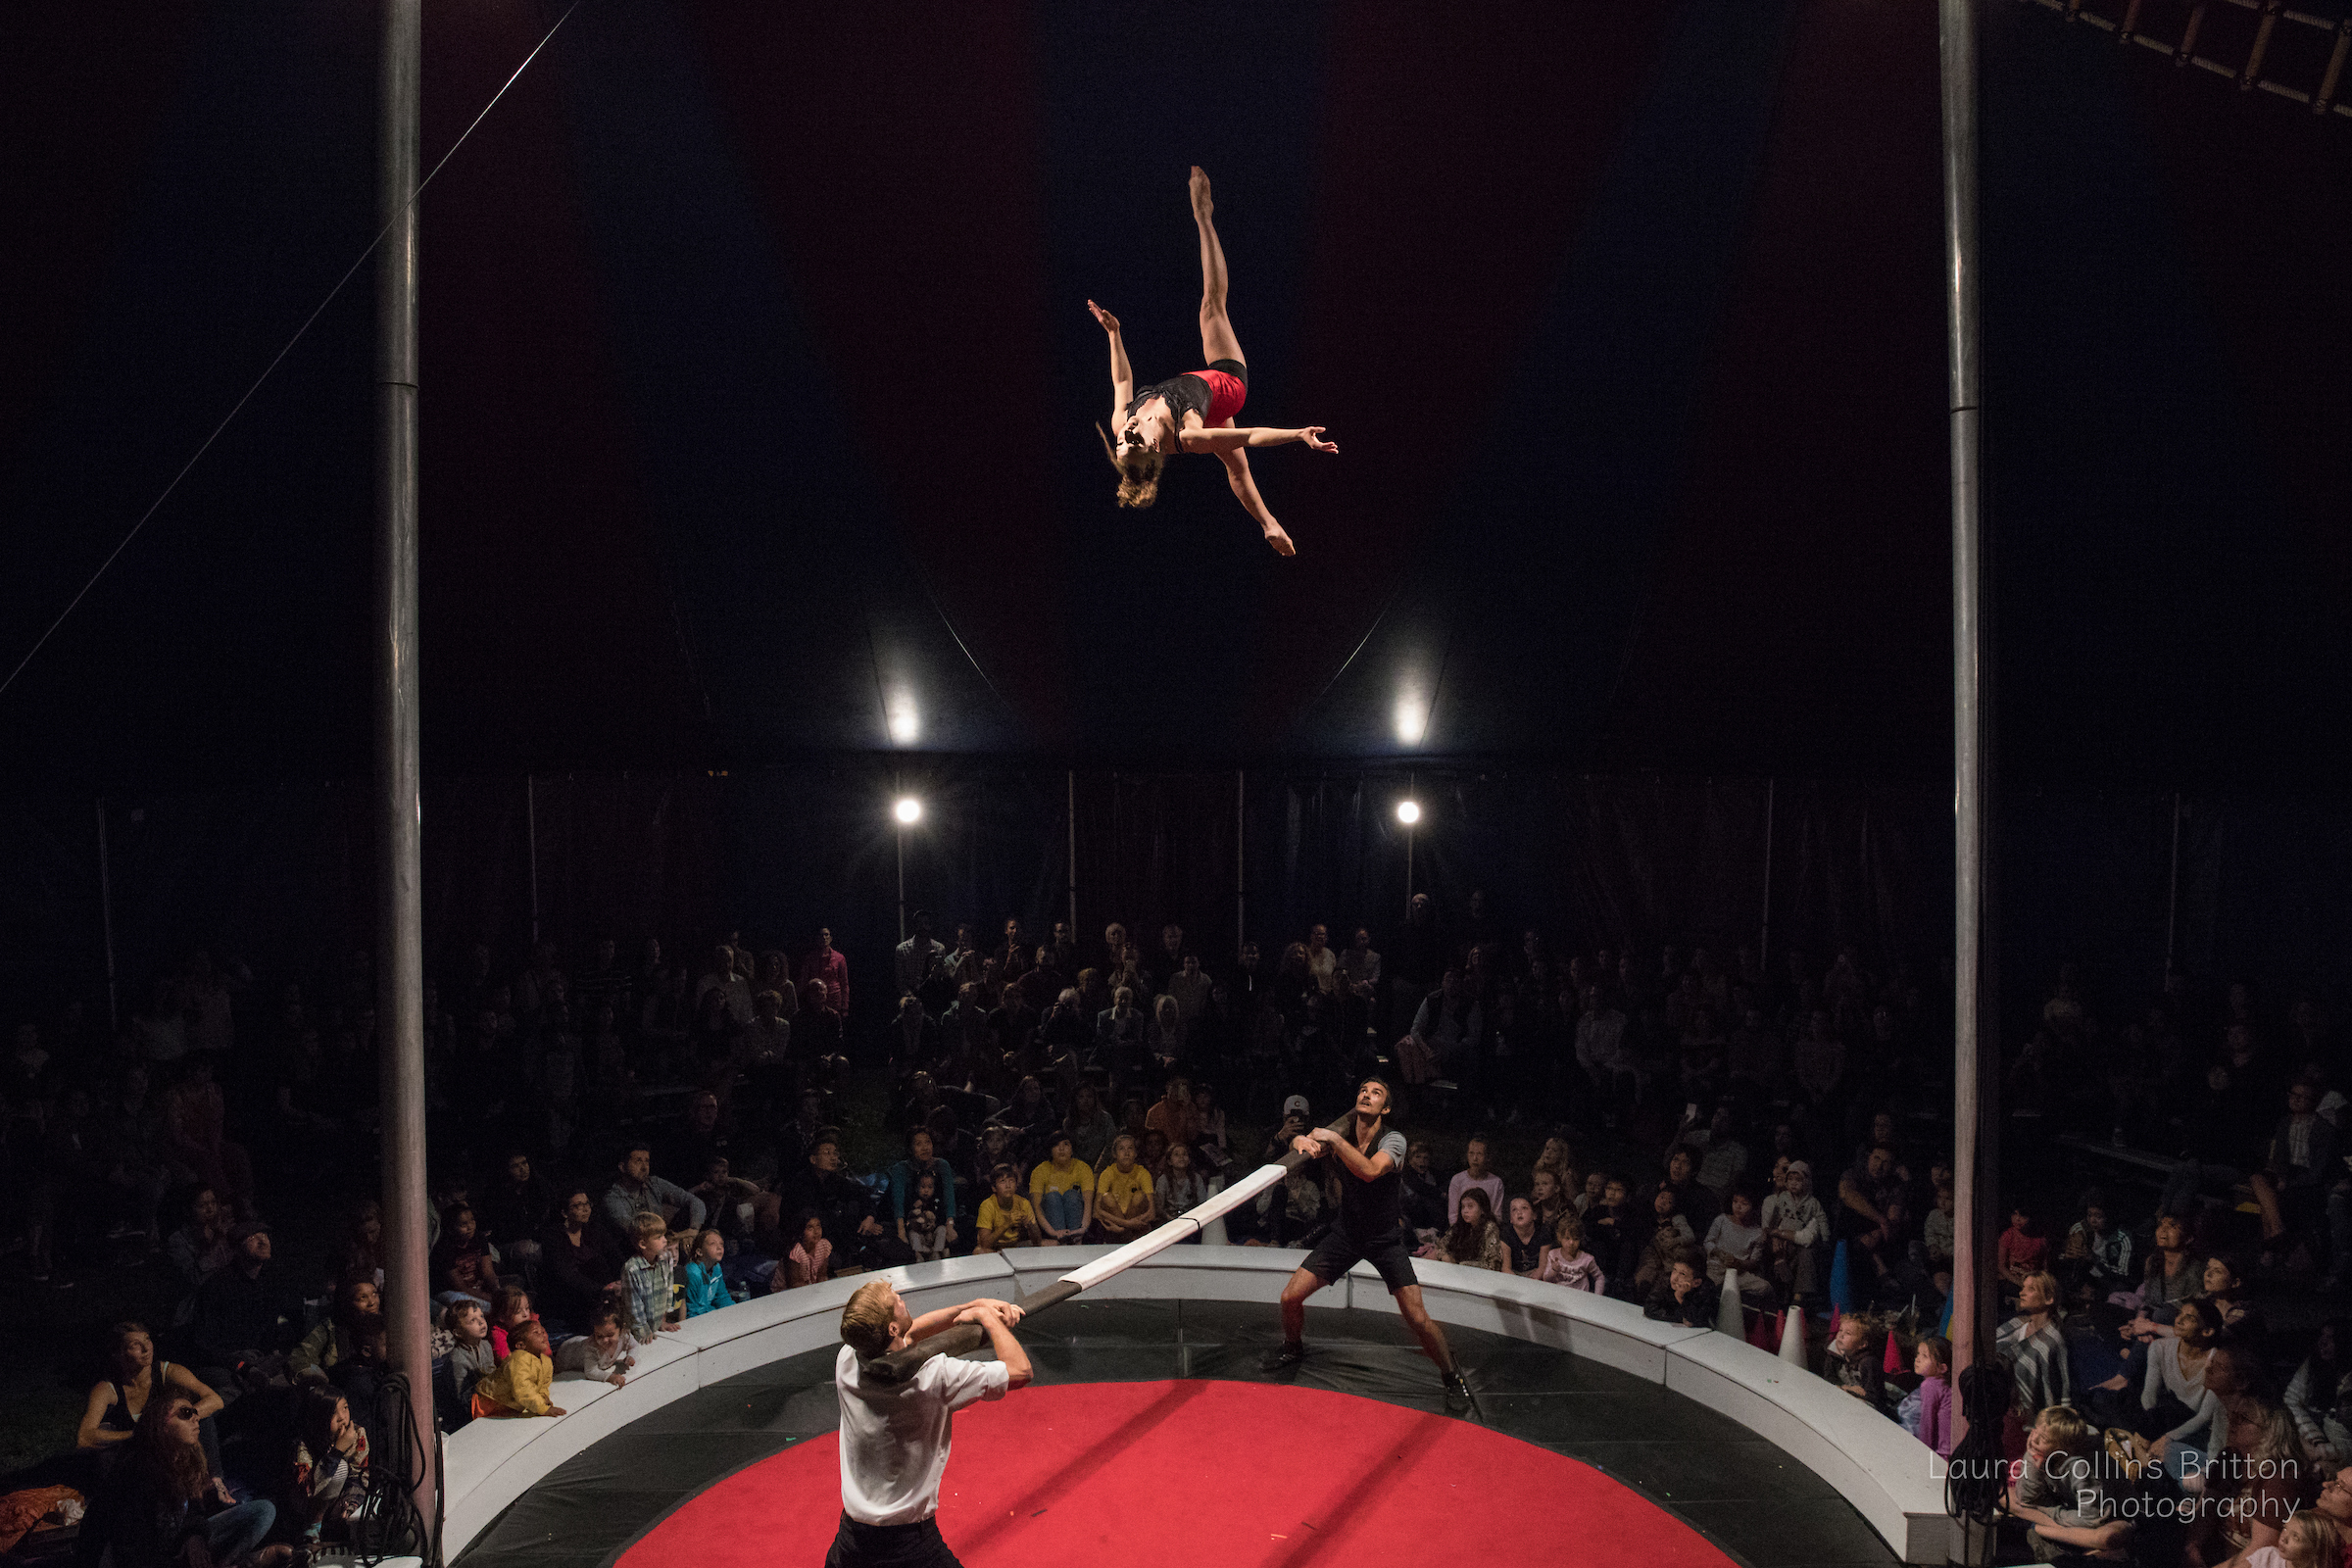 Midnight Circus Acrobats on Russian Bar